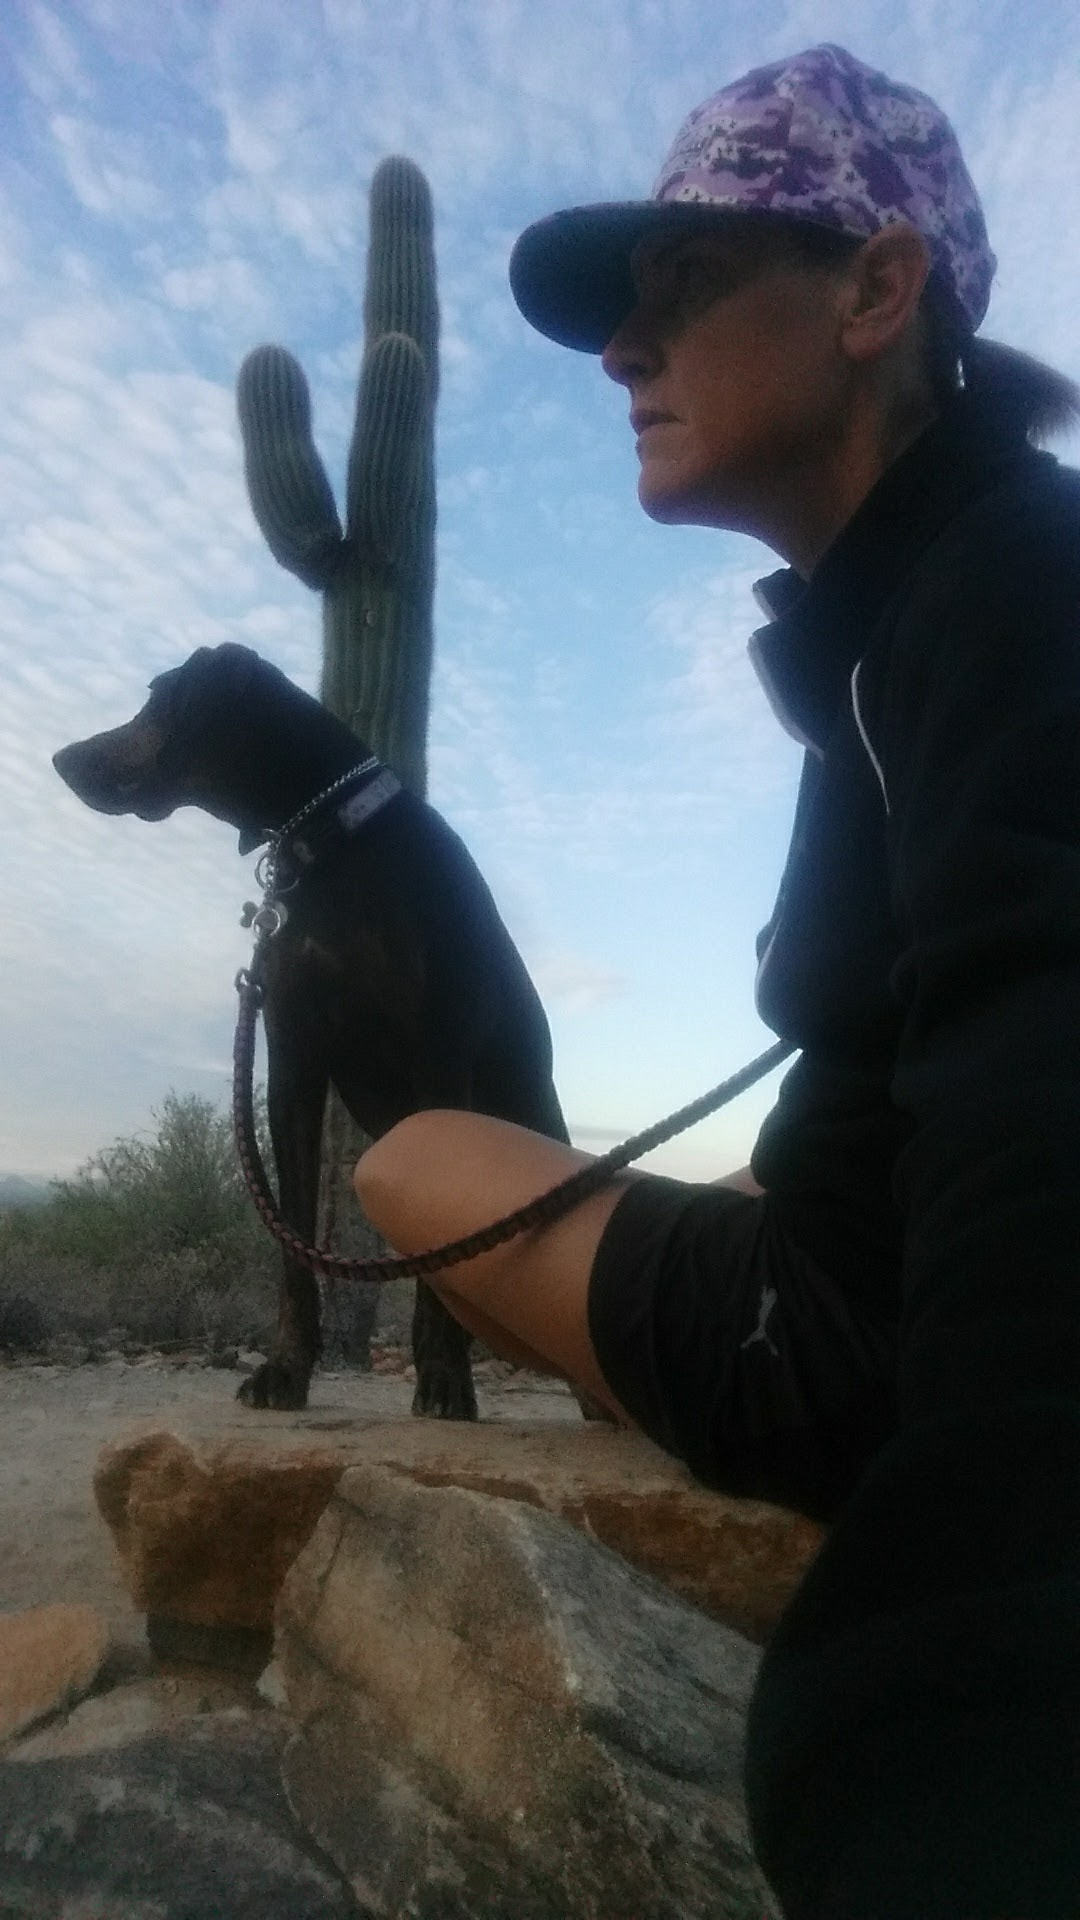 Daisy Mae, left, and her owner Laurel Darren enjoy a quiet moment of reflection surrounded by nature during the early-morning quiet of a Phoenix dog hike.